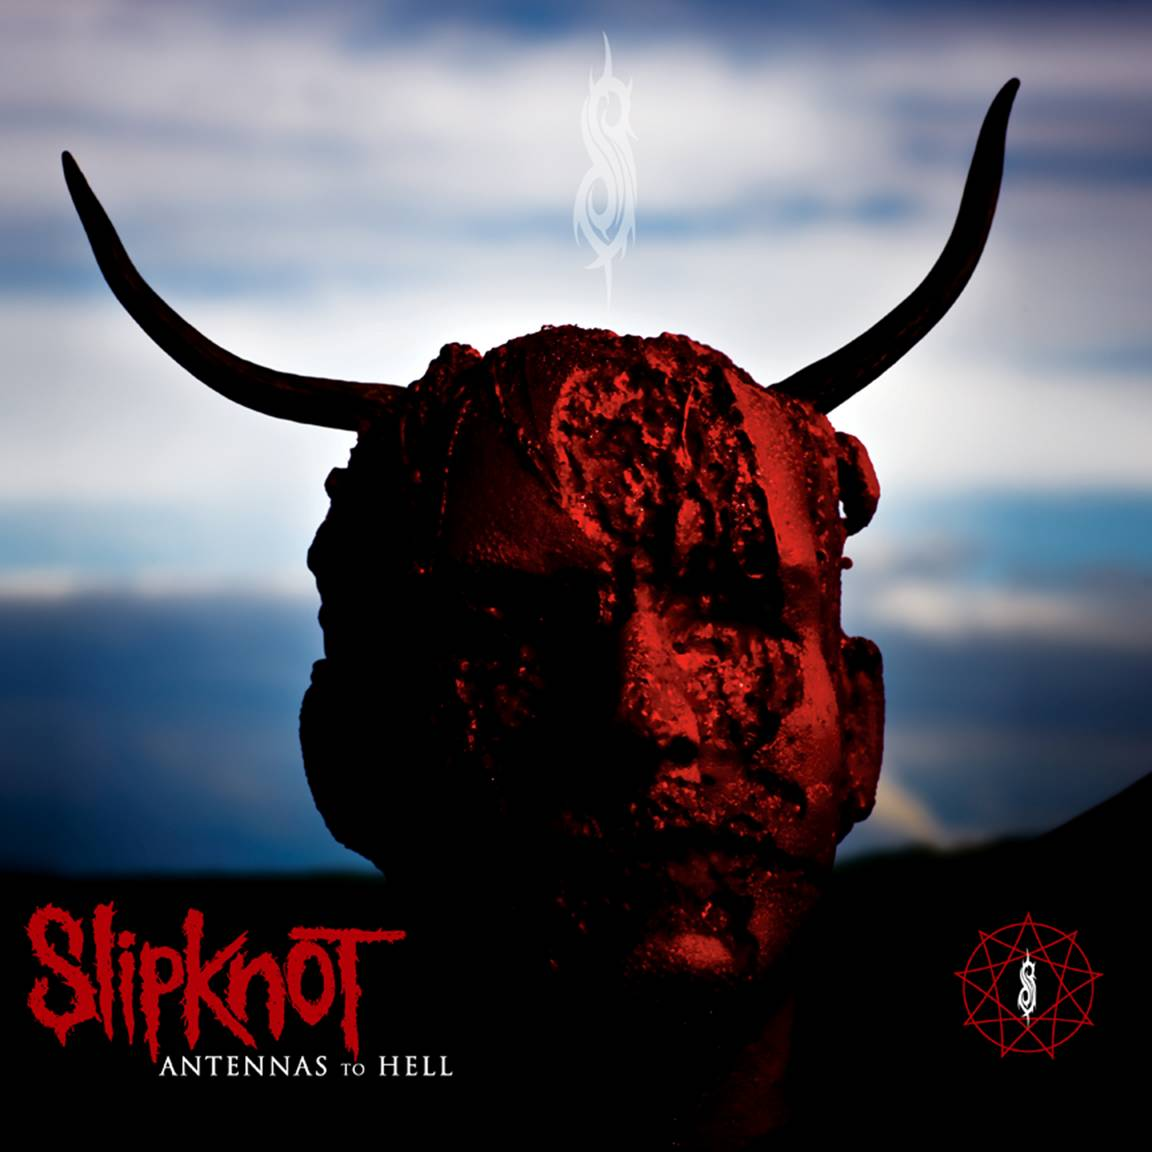 Slipknot album cover